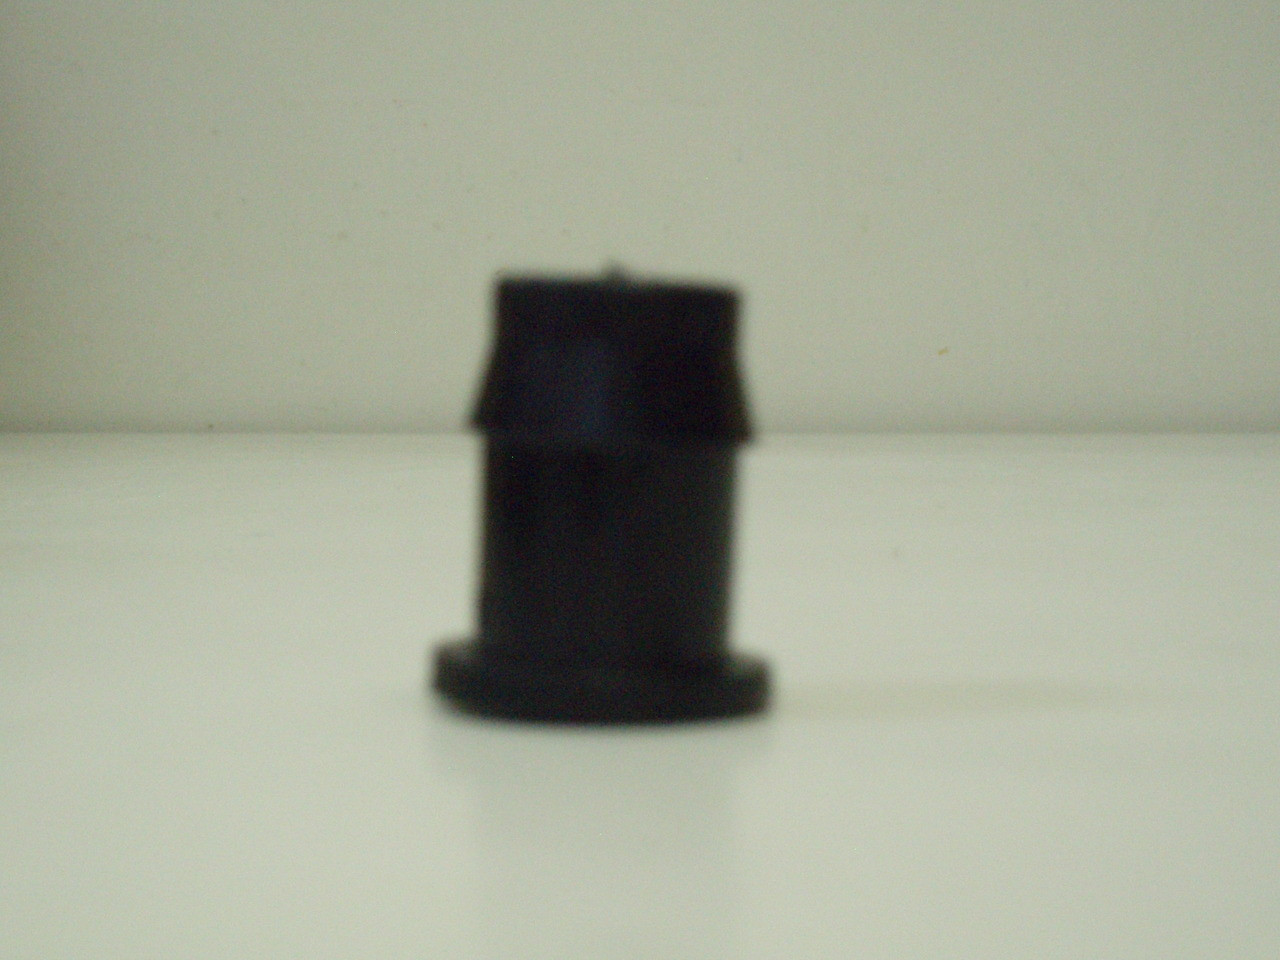 19mm End Stop